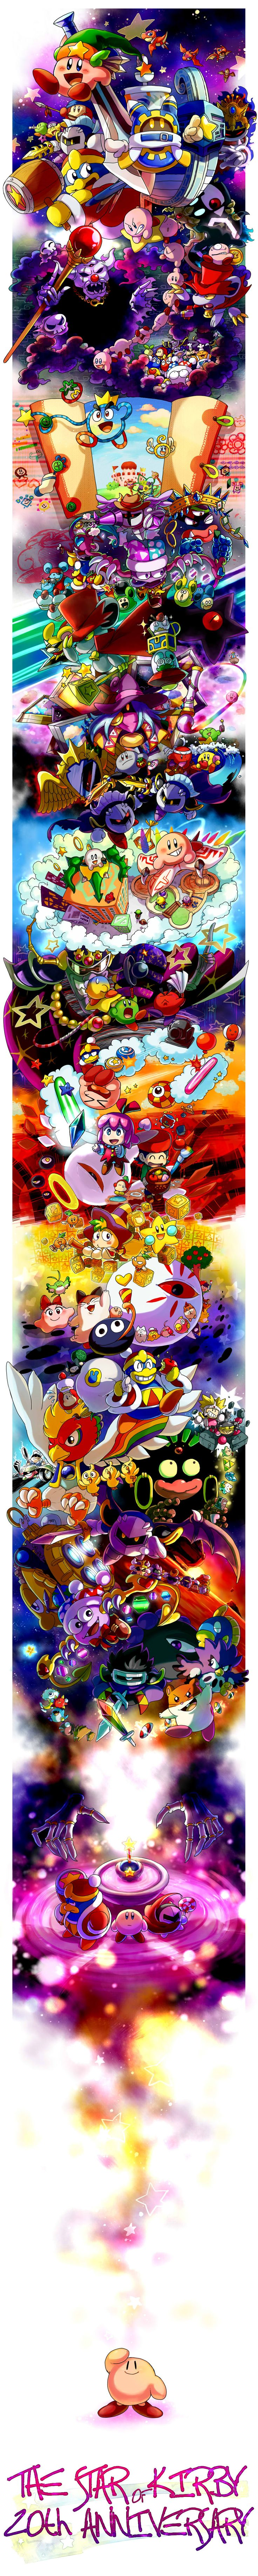 20 year of kirby